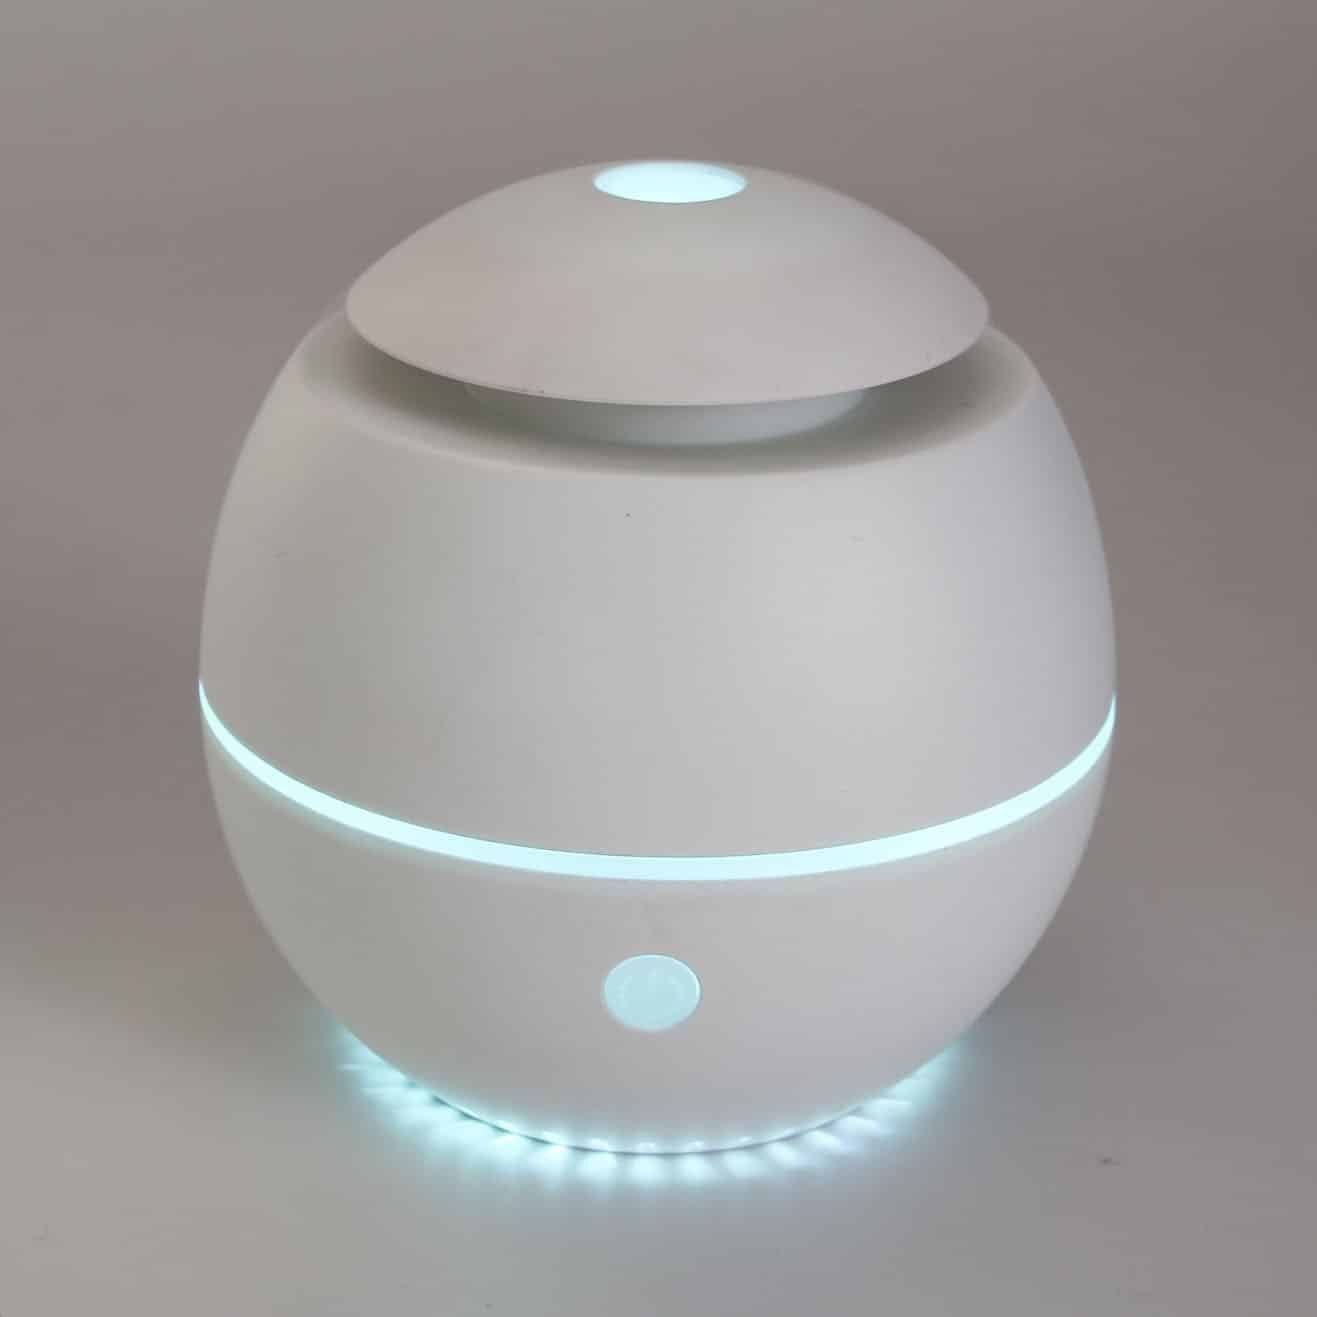 X125-Wholesale-Fan-diffuser-with-USB-essential-oil-manufacturers-6